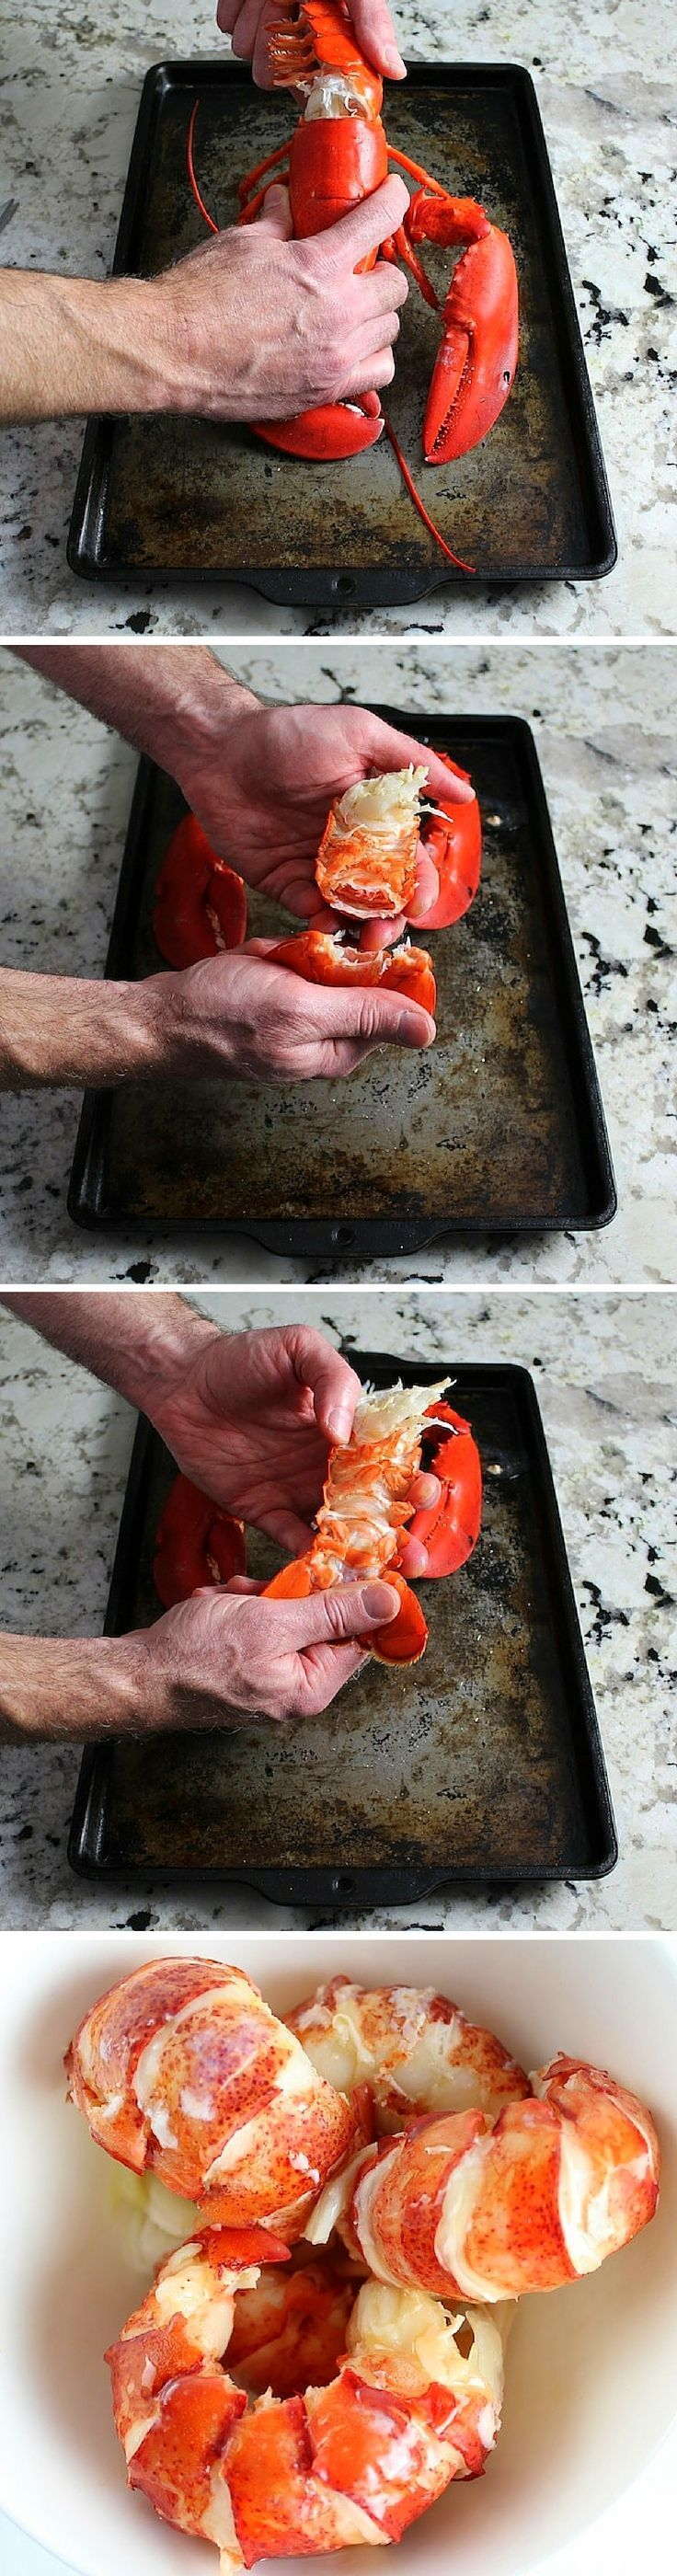 Master this boiled lobster recipe just in time for supper!